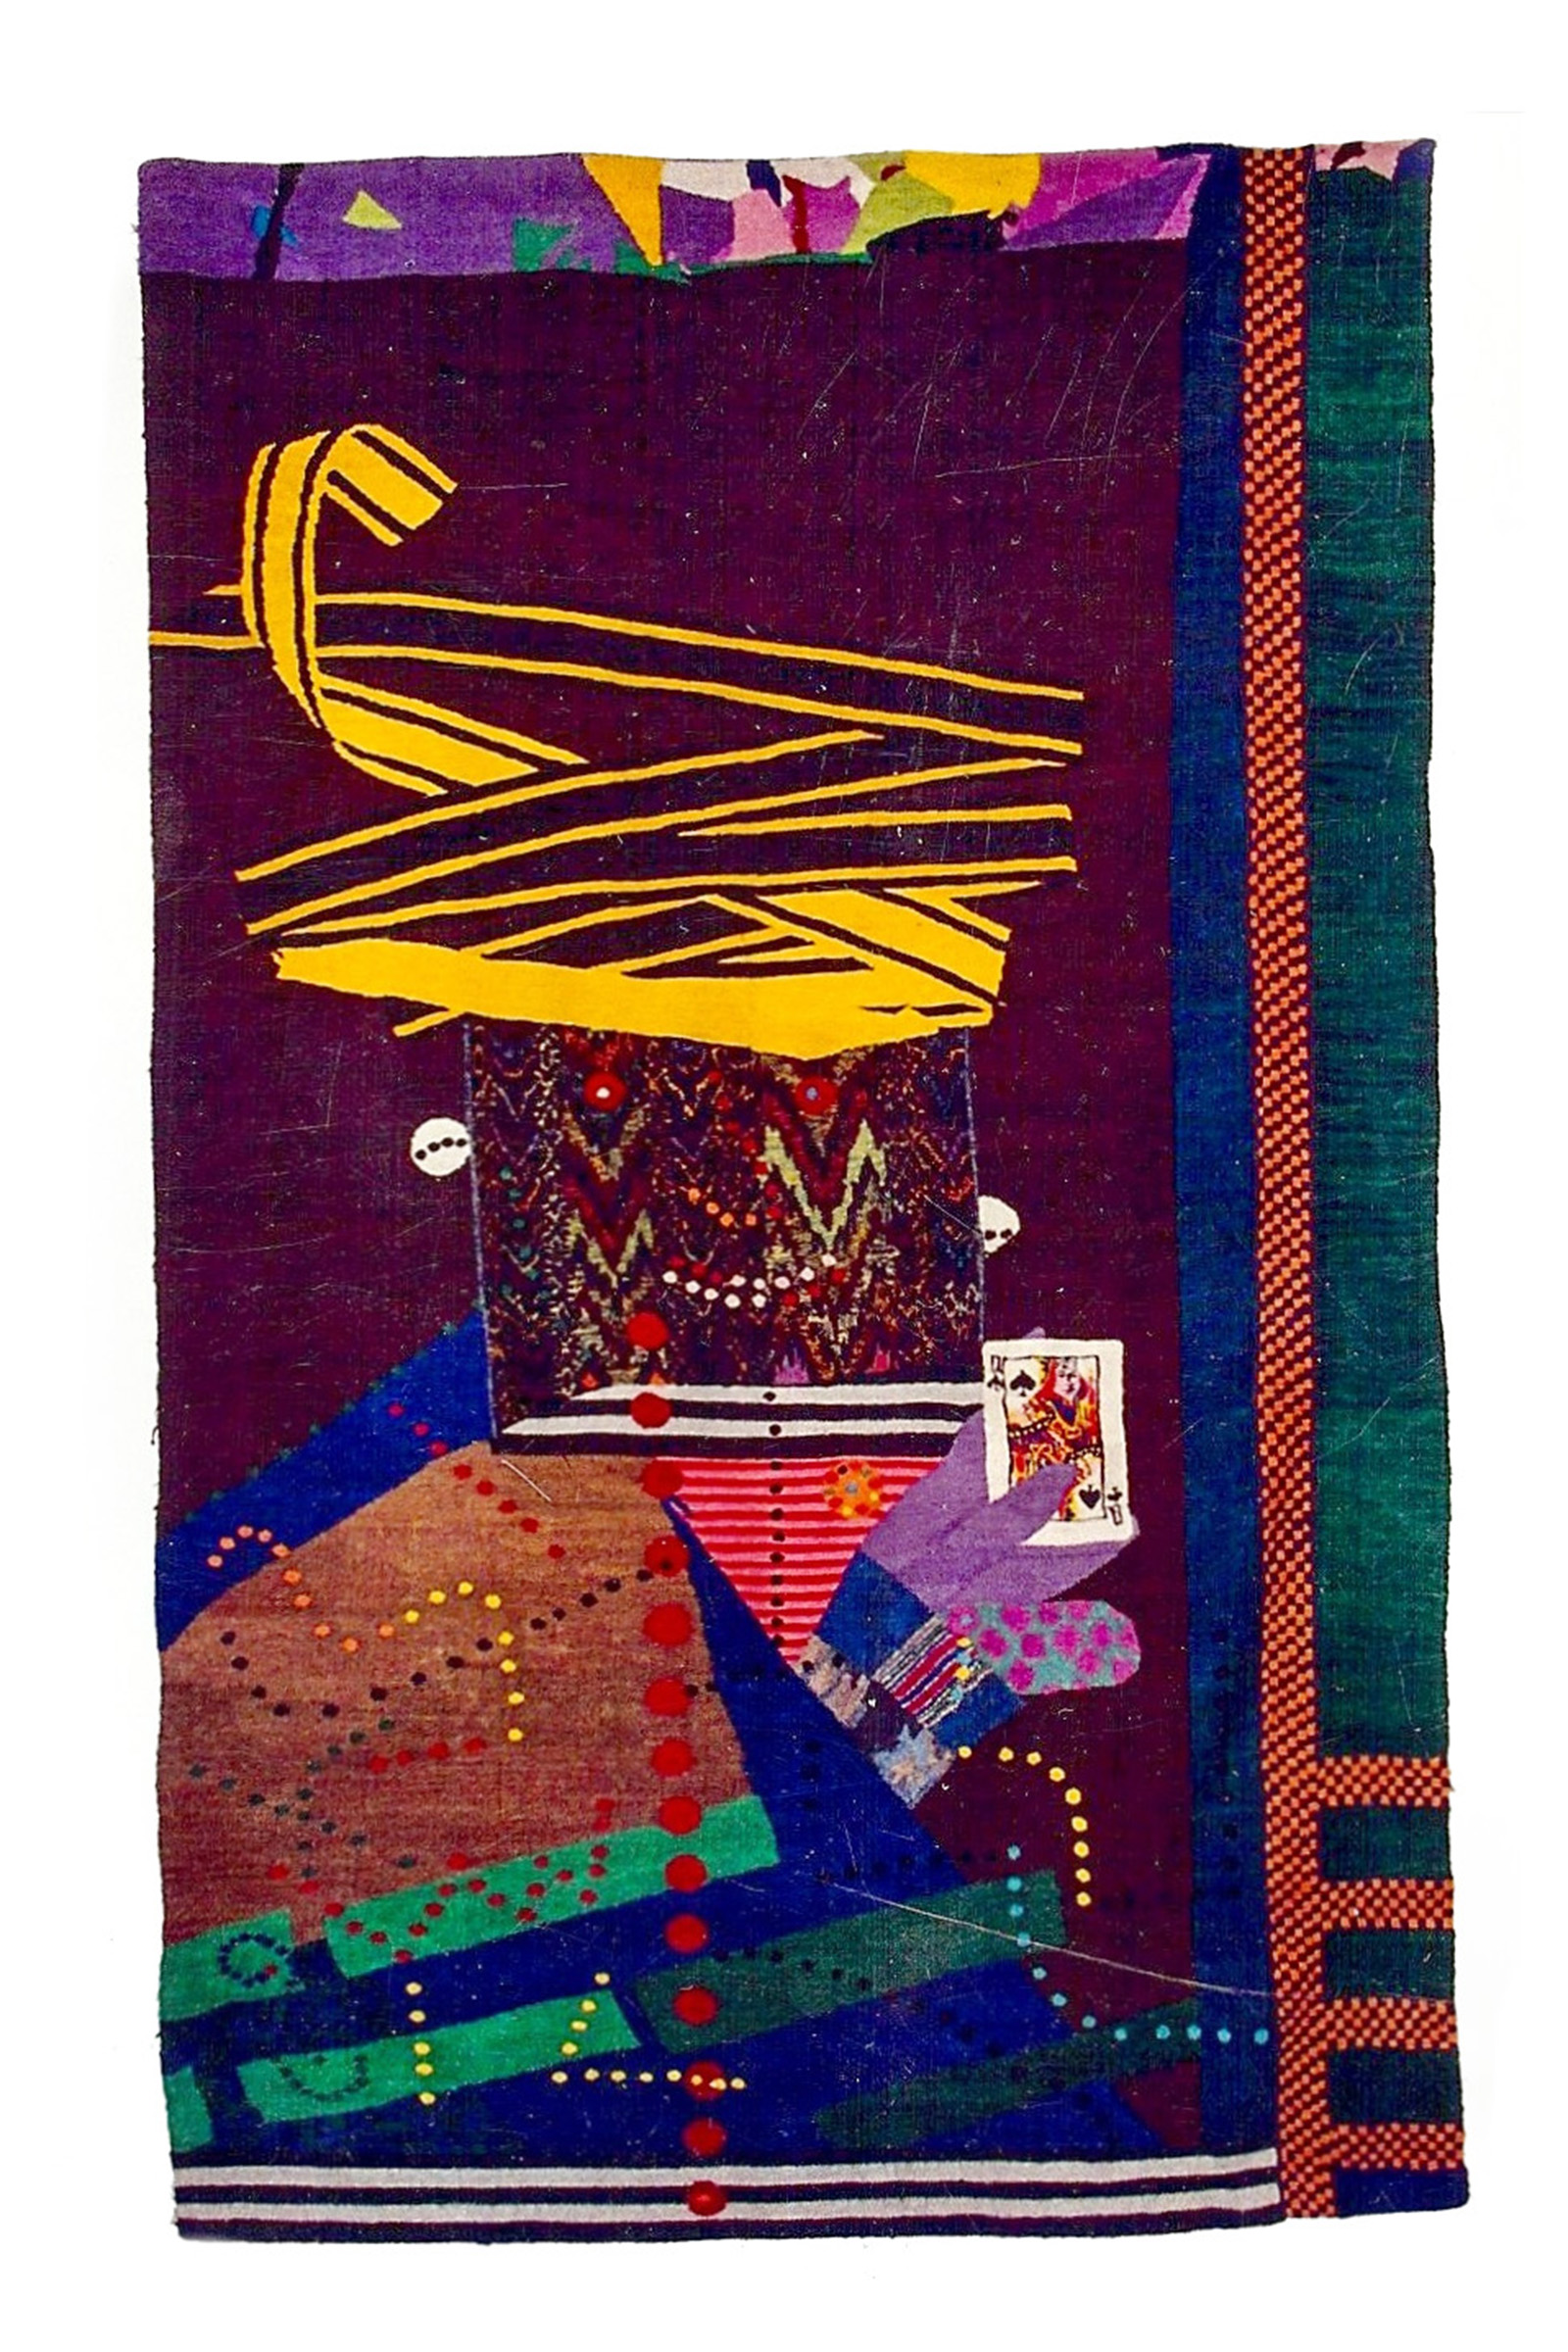 Queen Size: 2.43m x 1.49m First Woven: 1991 Edition of